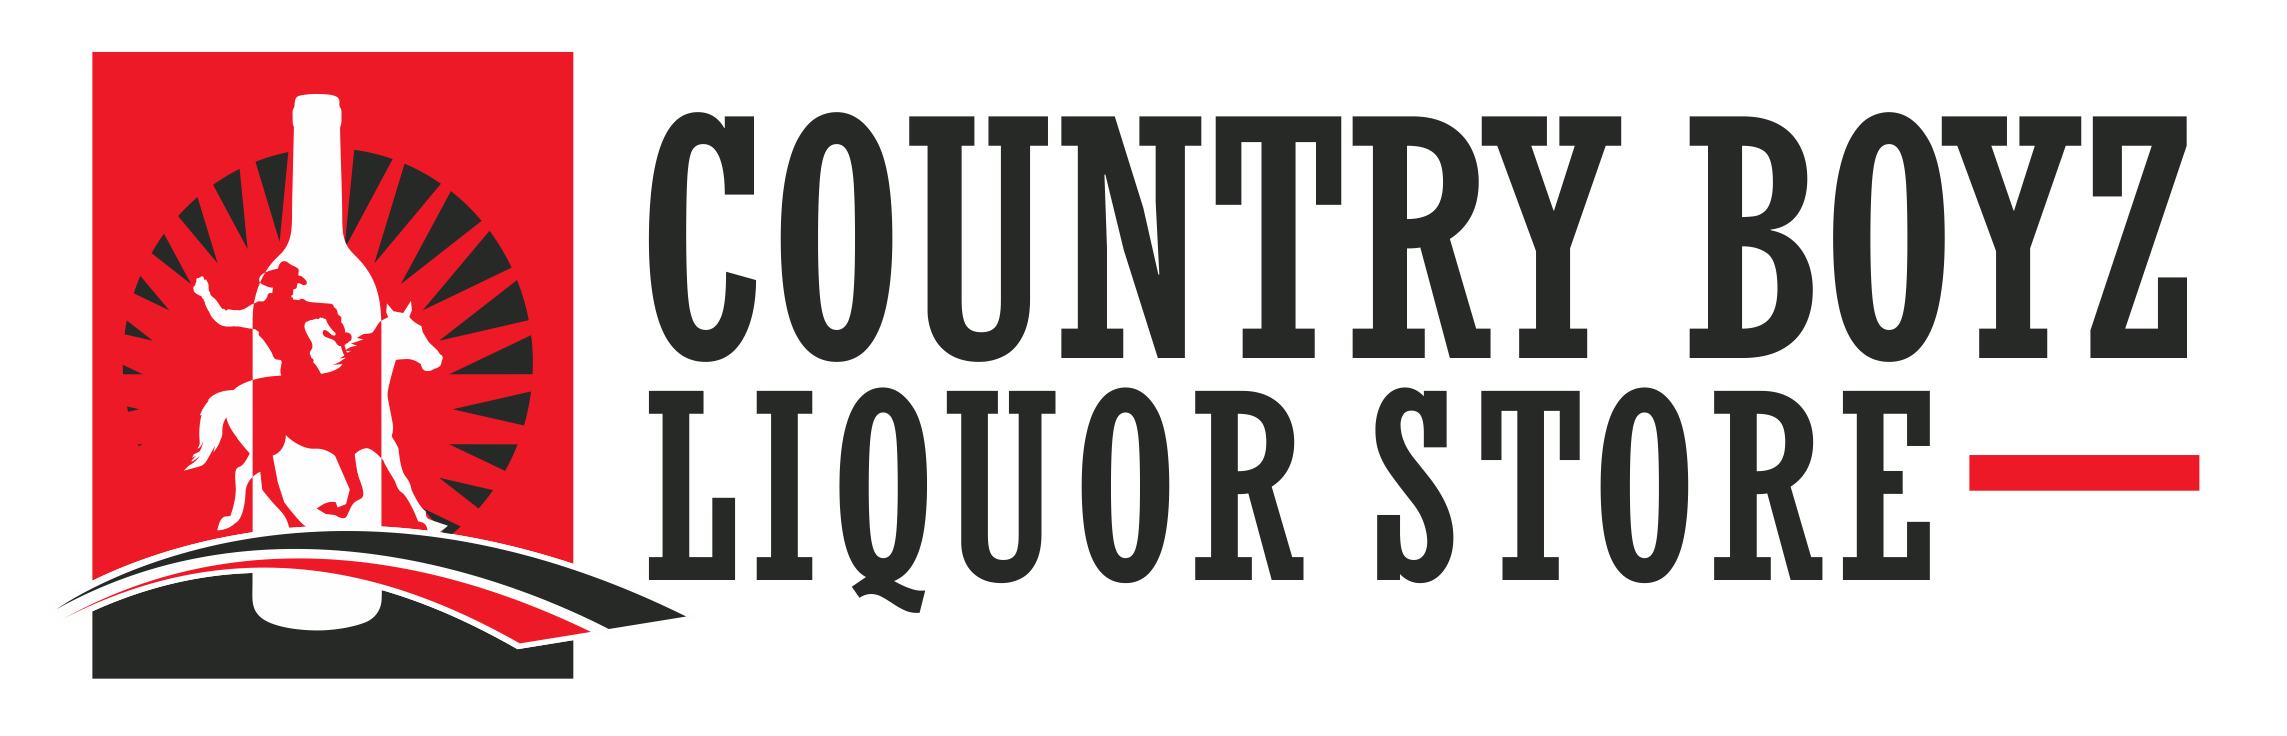 Country Boyz Liquor Store